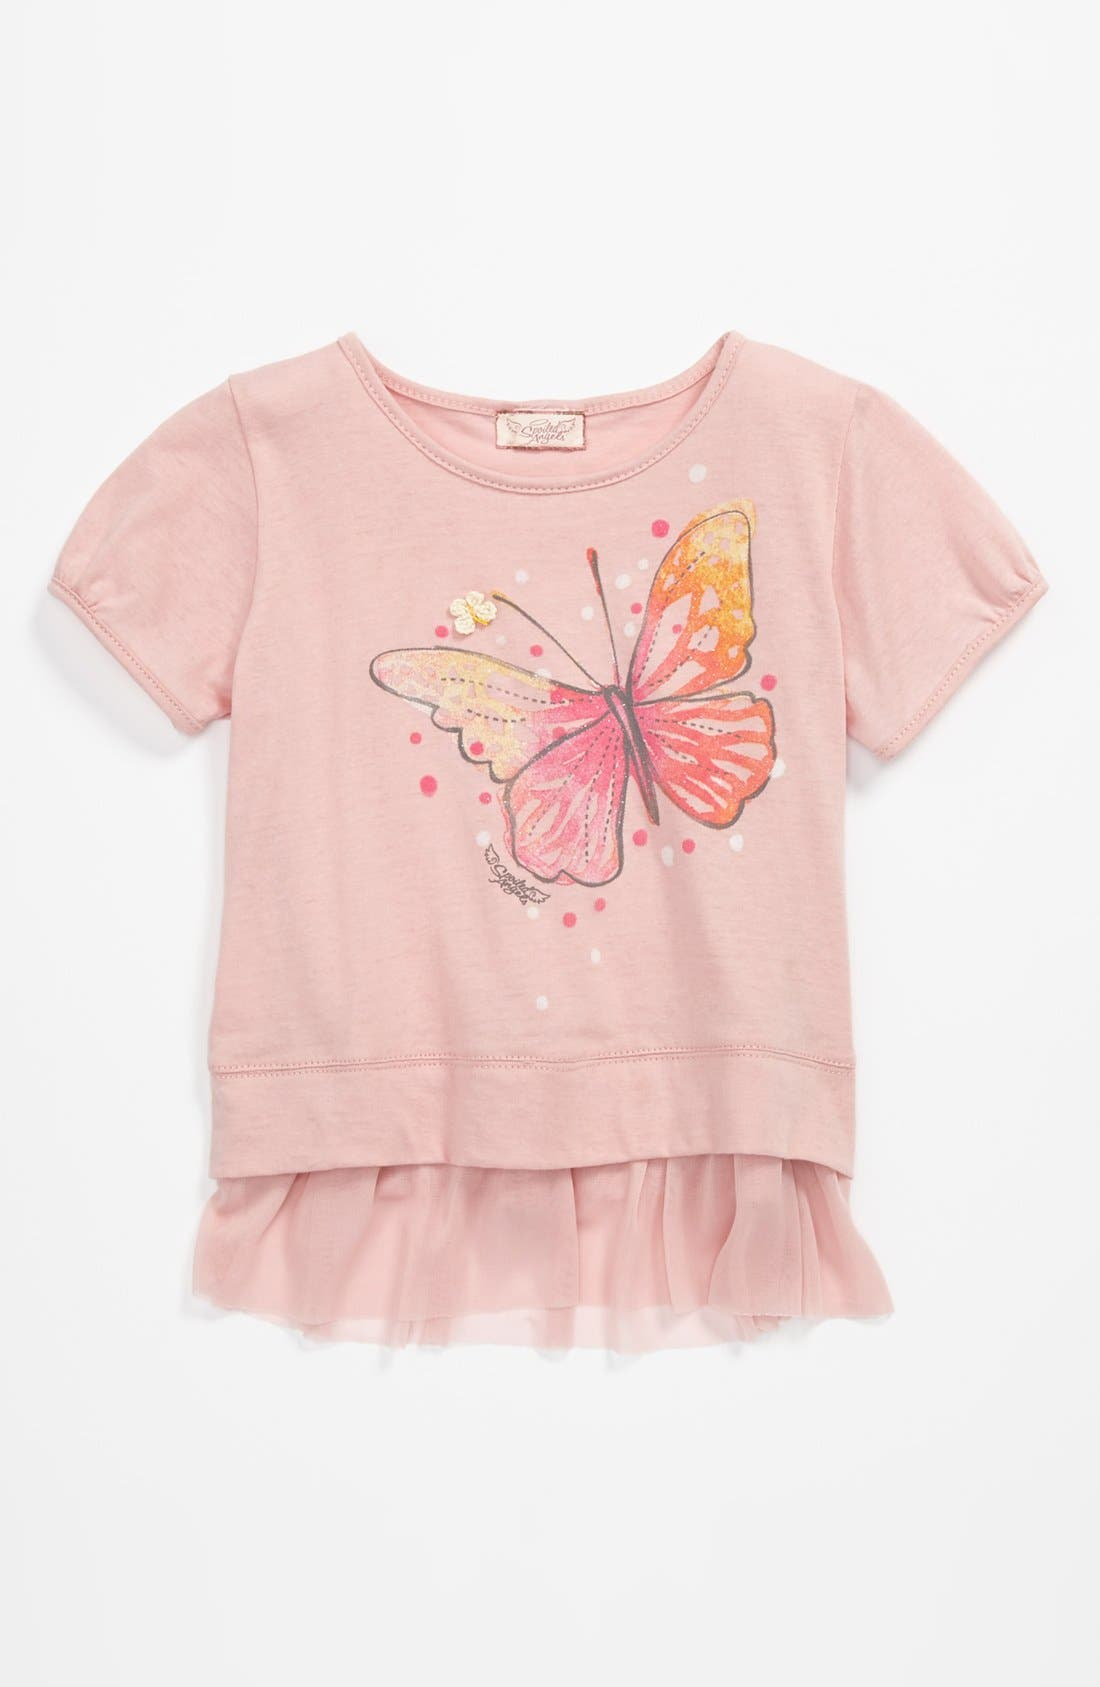 Main Image - Spoiled Angels 'Butterfly' Top (Toddler)